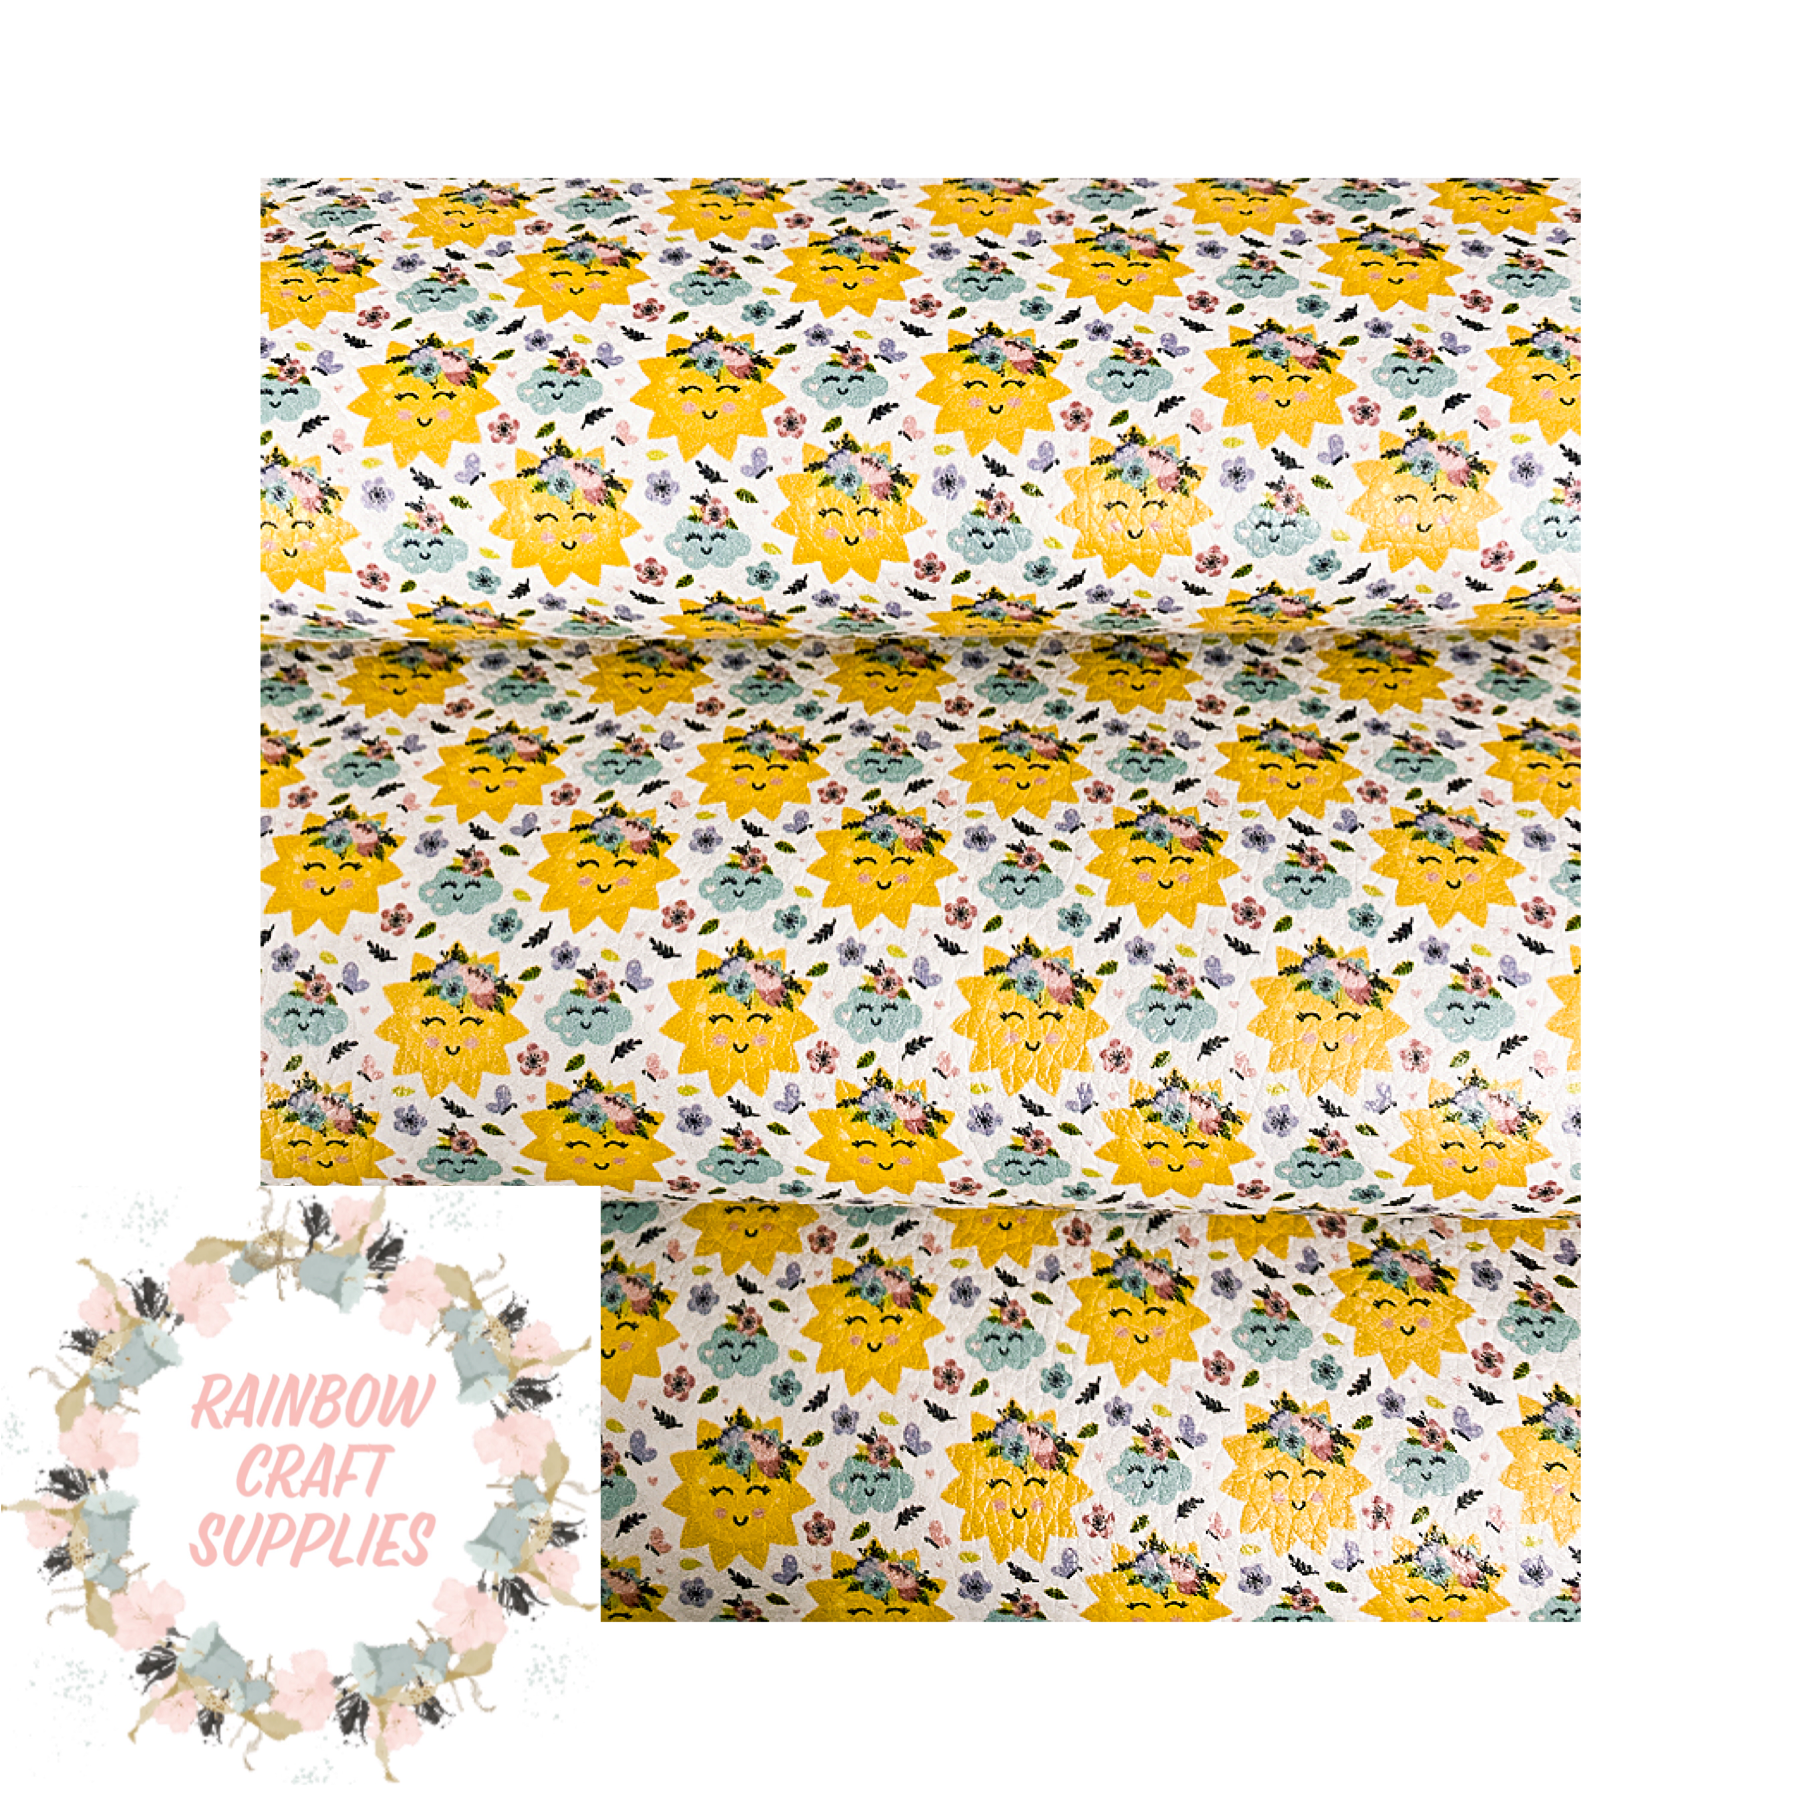 Sunshine  patterned leatherette fabric A4